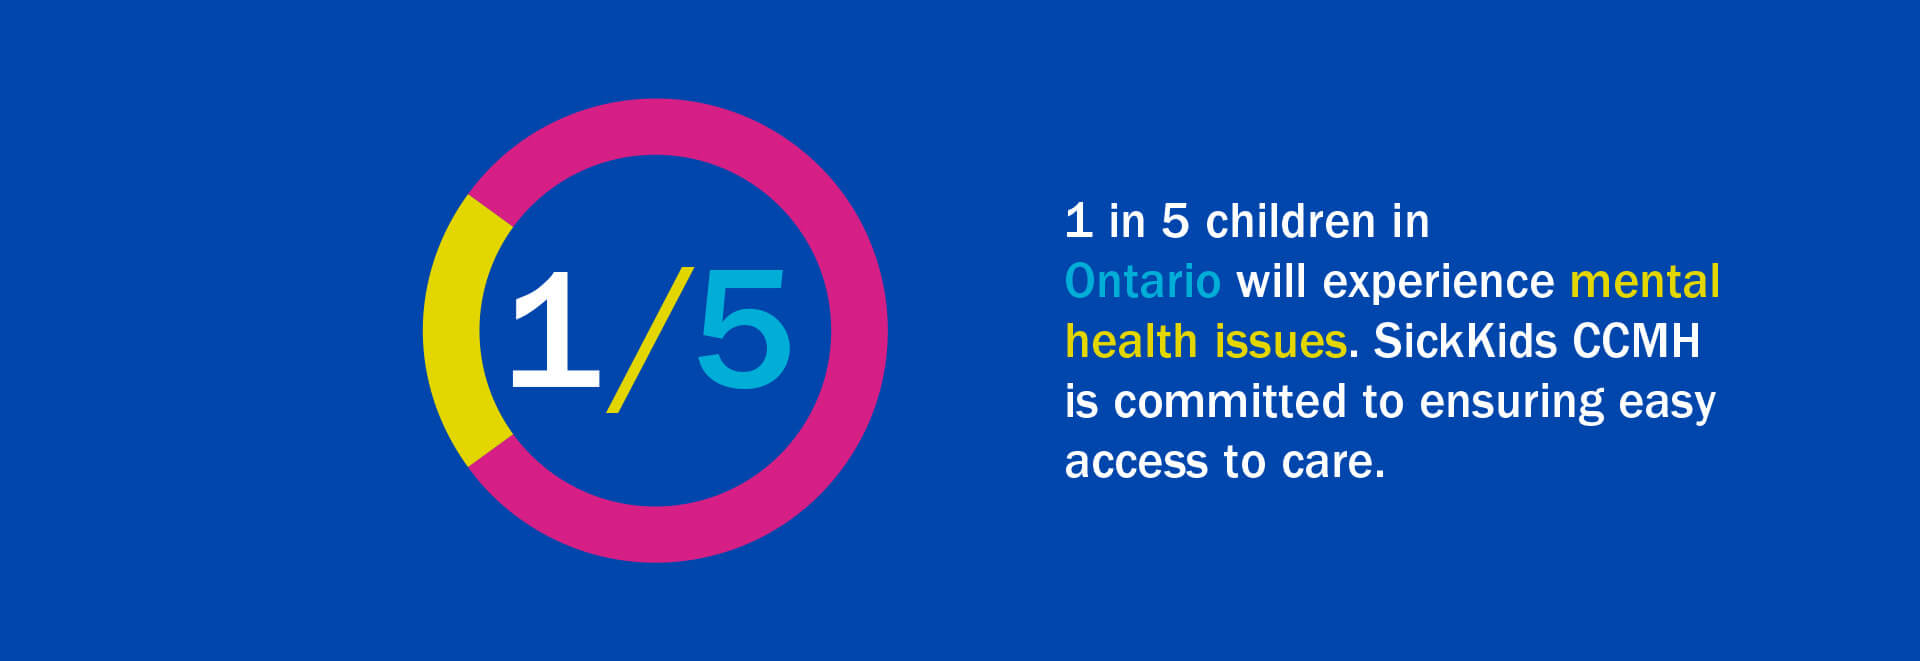 Infographic - 1 in 5 children in Ontario will experience mental health issues. SickKids CCMH is committed to ensuring easy access to care.